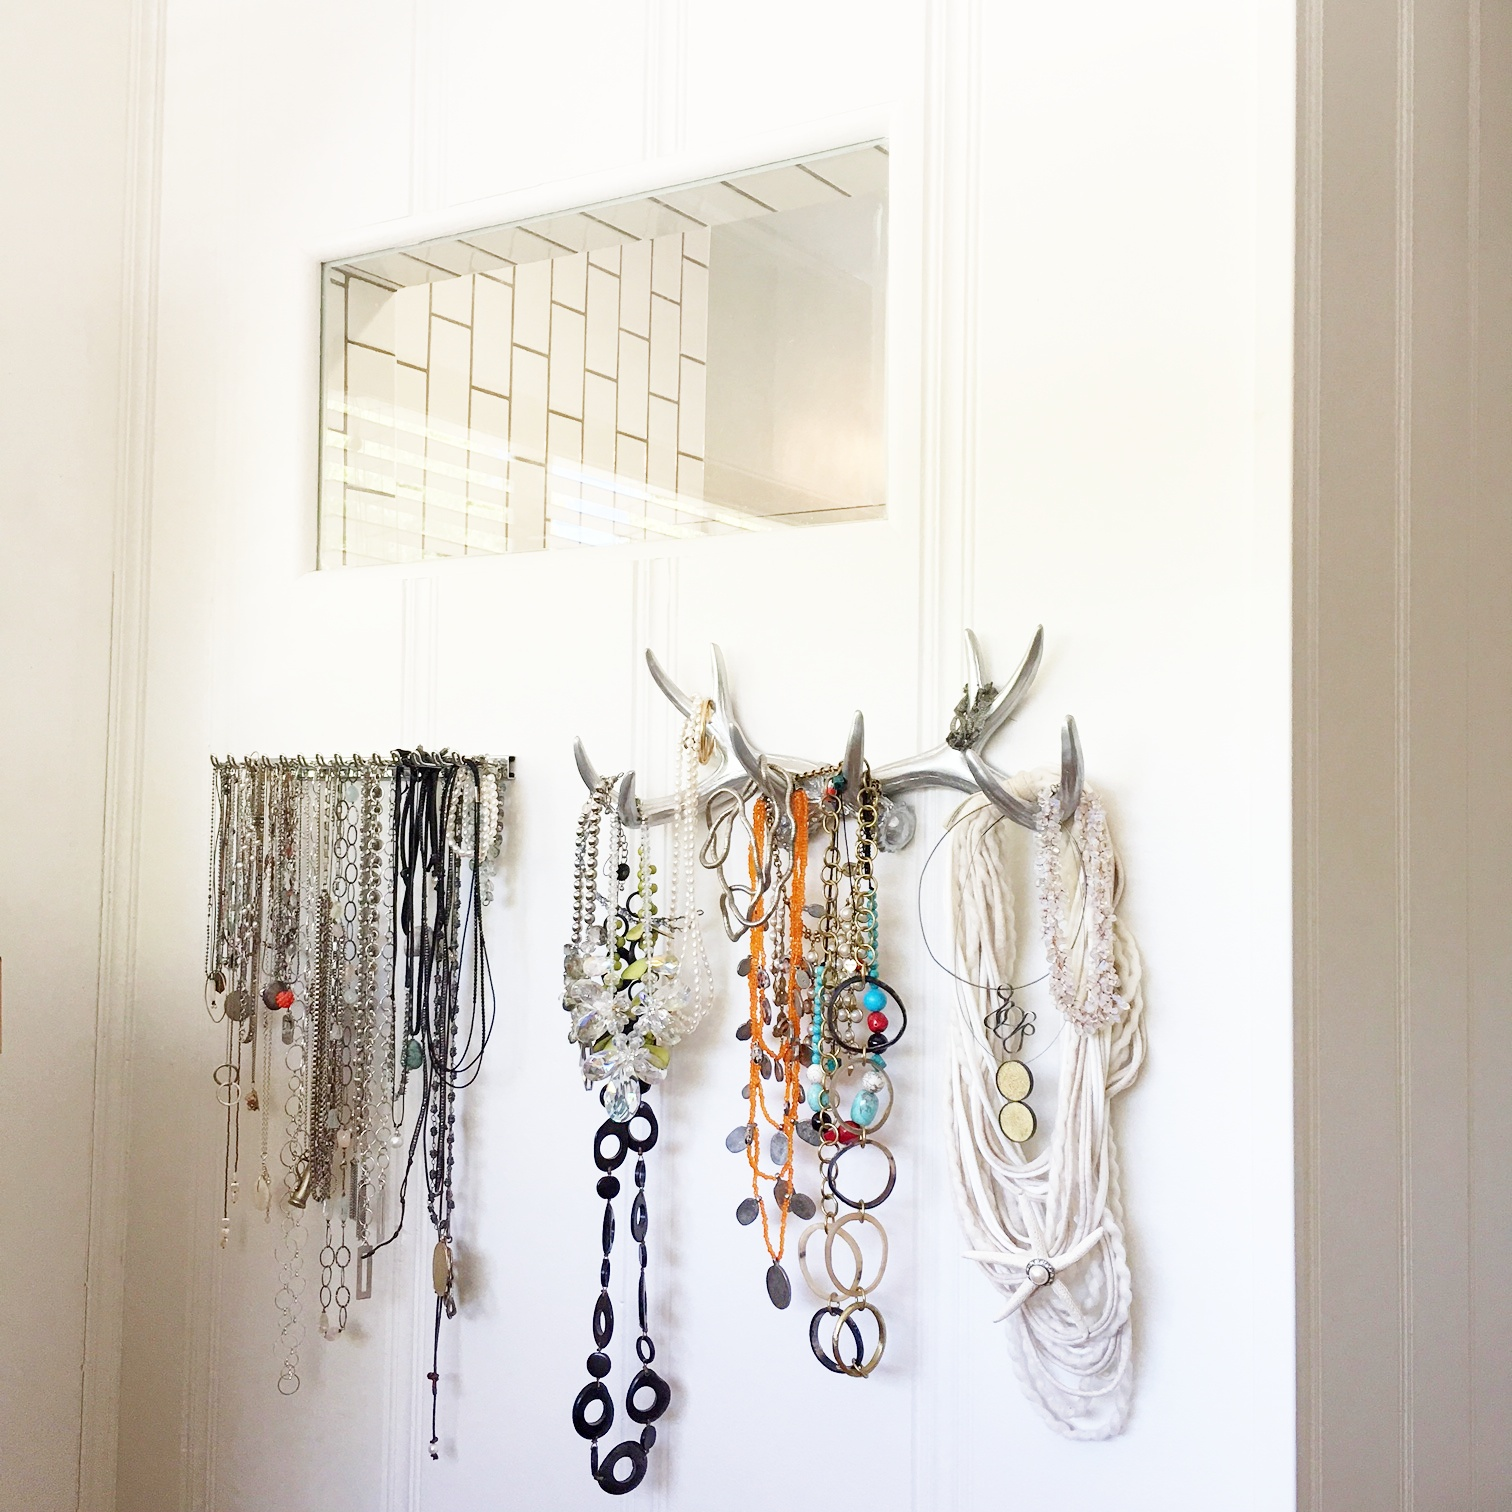 Here is the shower window and a new wall to hang my necklaces (which I have a few of). The one on the left is actually a men's tie holder. The one on the right is a silver painted set of antlers. How cute is that? I got it from my bestie for my bday.